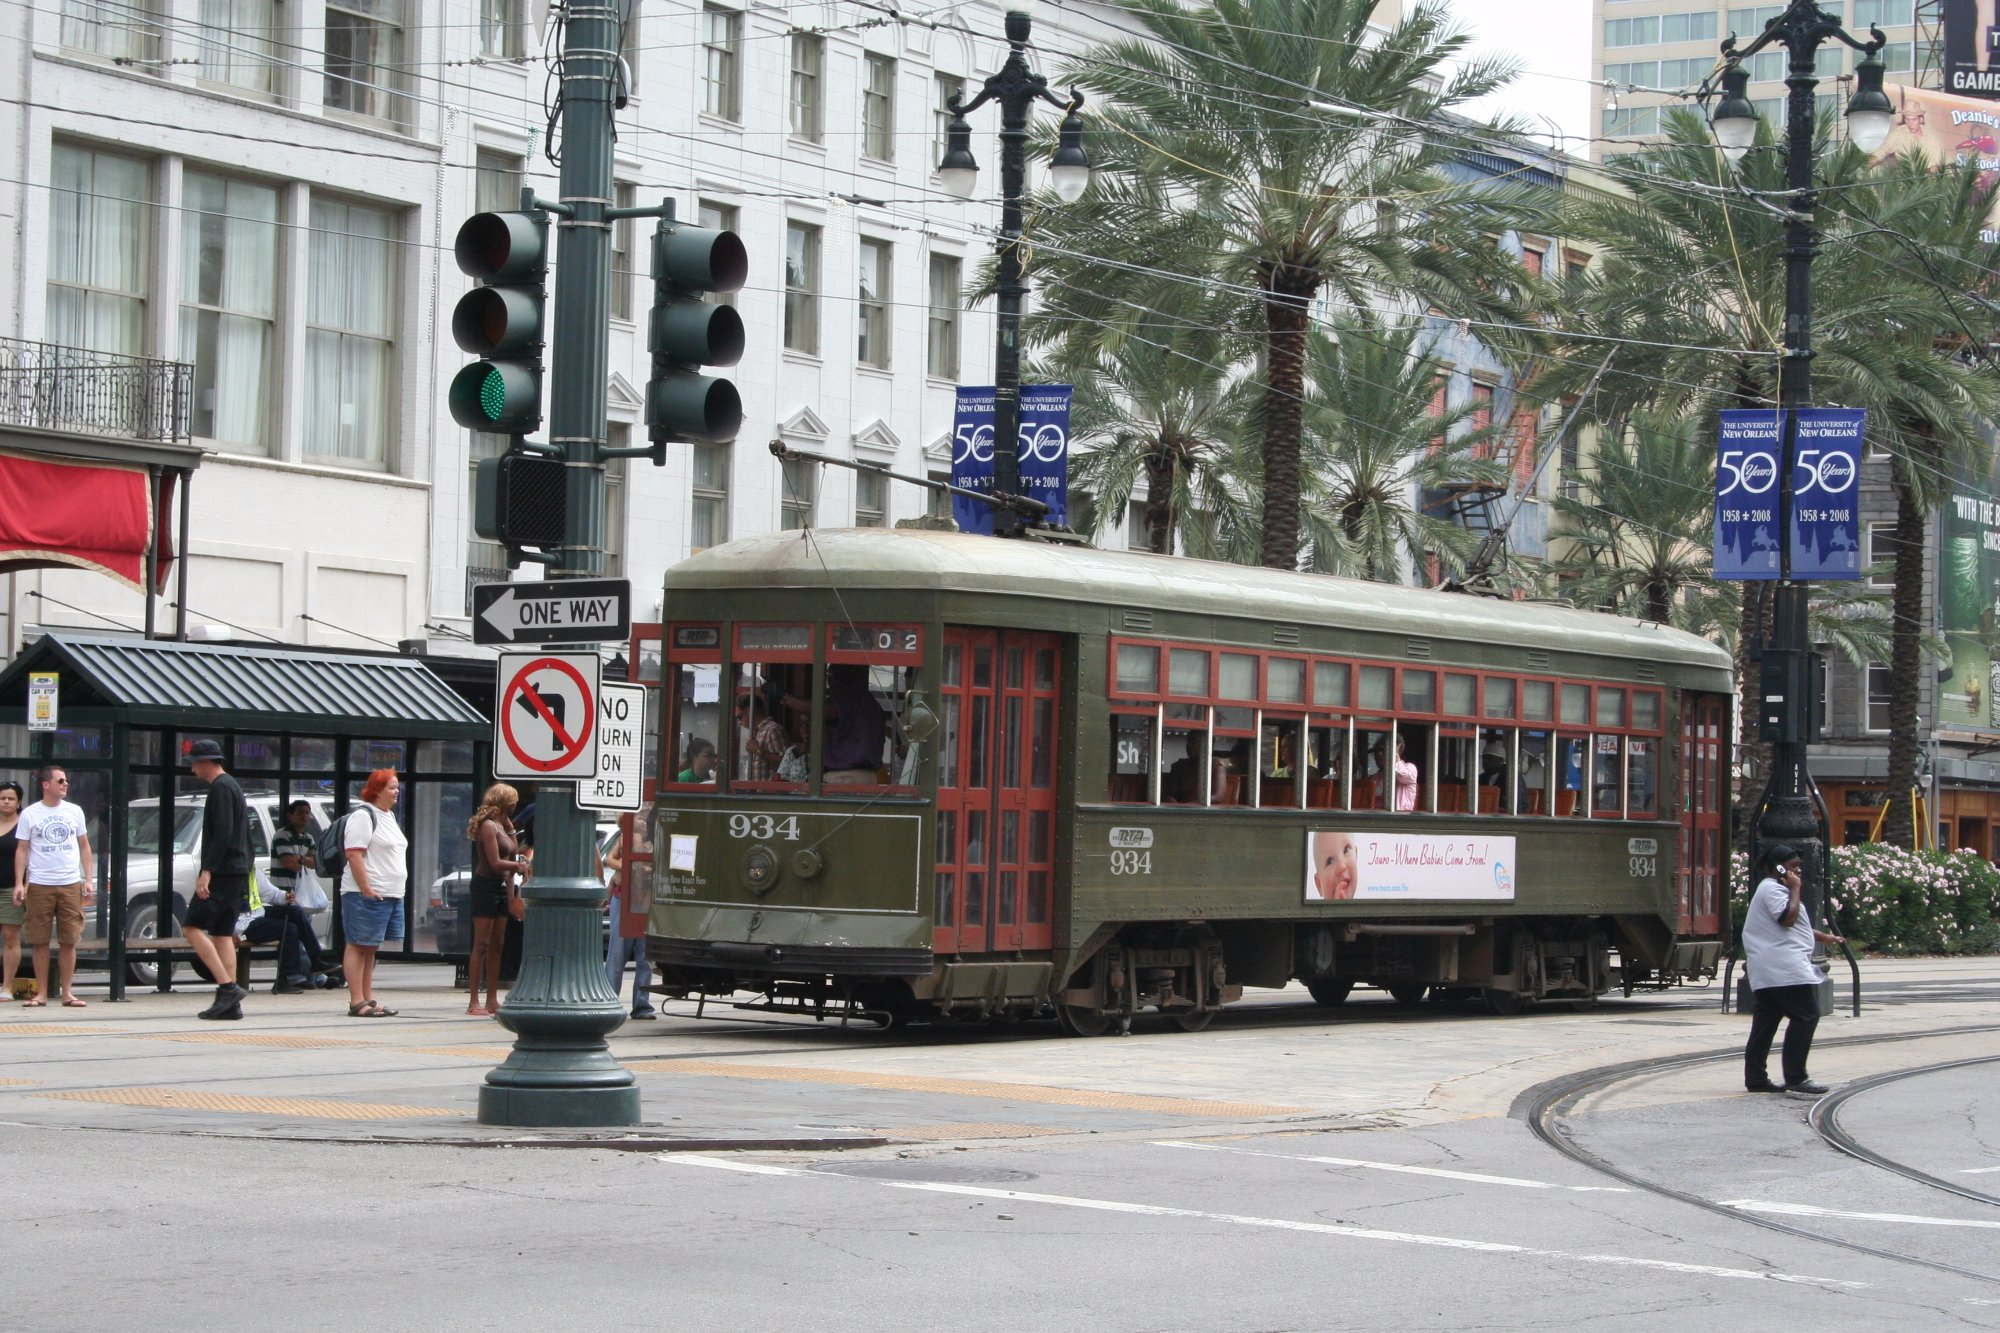 New Orleans tram near Bourbon Street